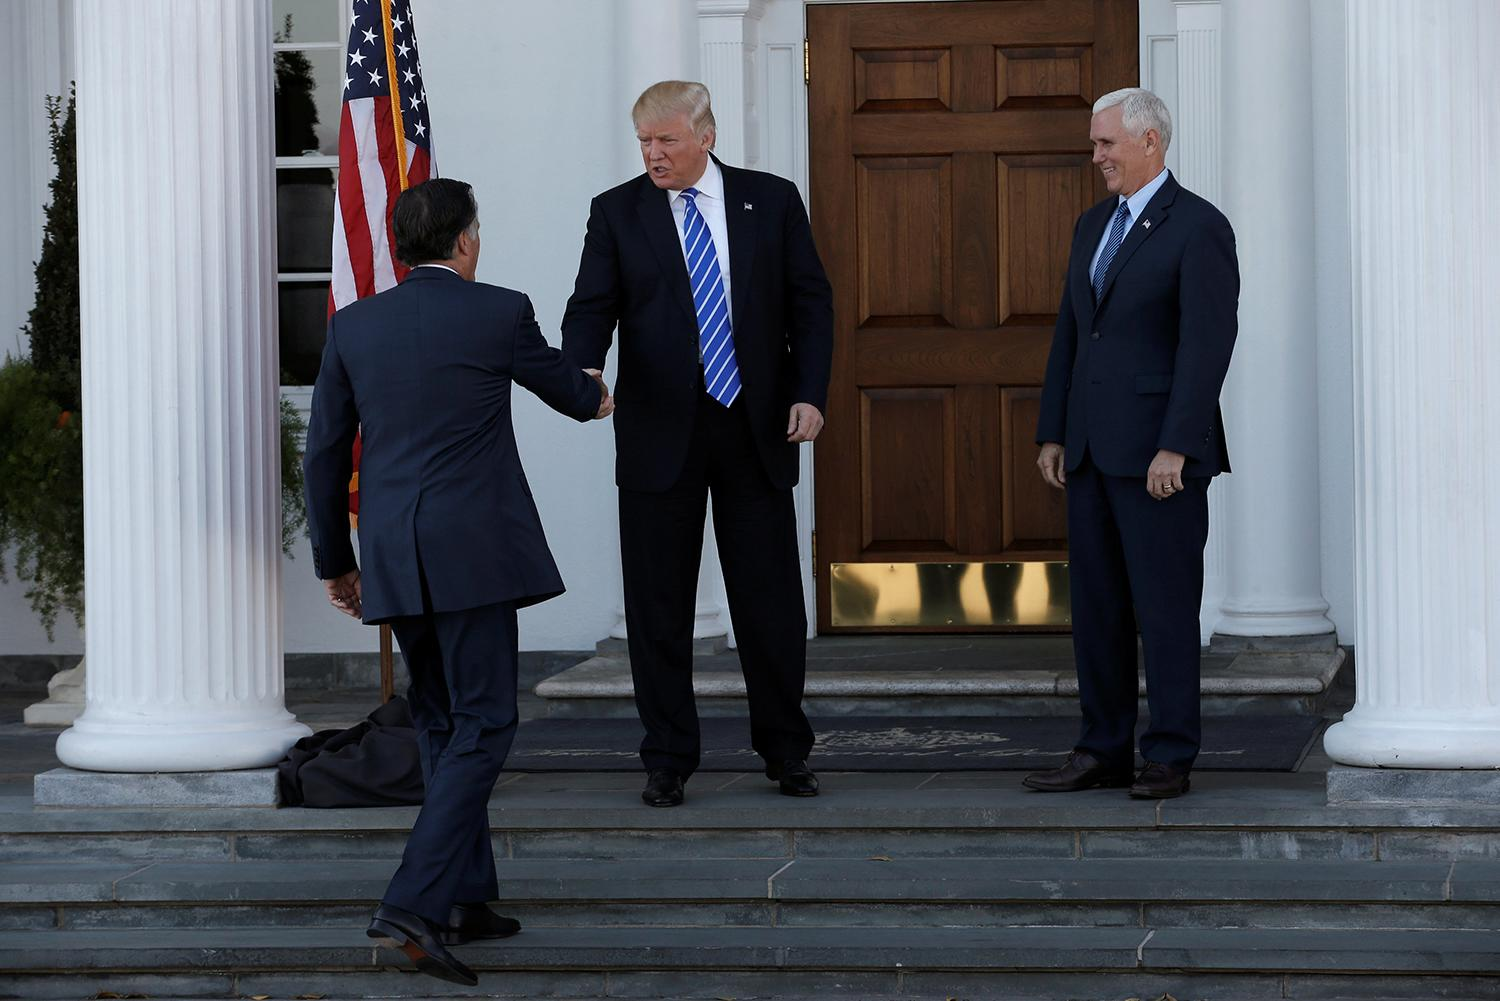 <p>U.S. President-elect Donald Trump and Vice President-elect Mike Pence greet former Massachusetts Governor Mitt Romney (L) as he arrives for their meeting at the the main clubhouse at Trump National Golf Club in Bedminster, New Jersey, Nov. 19, 2016. (Photo: Mike Segar/Reuters) </p>